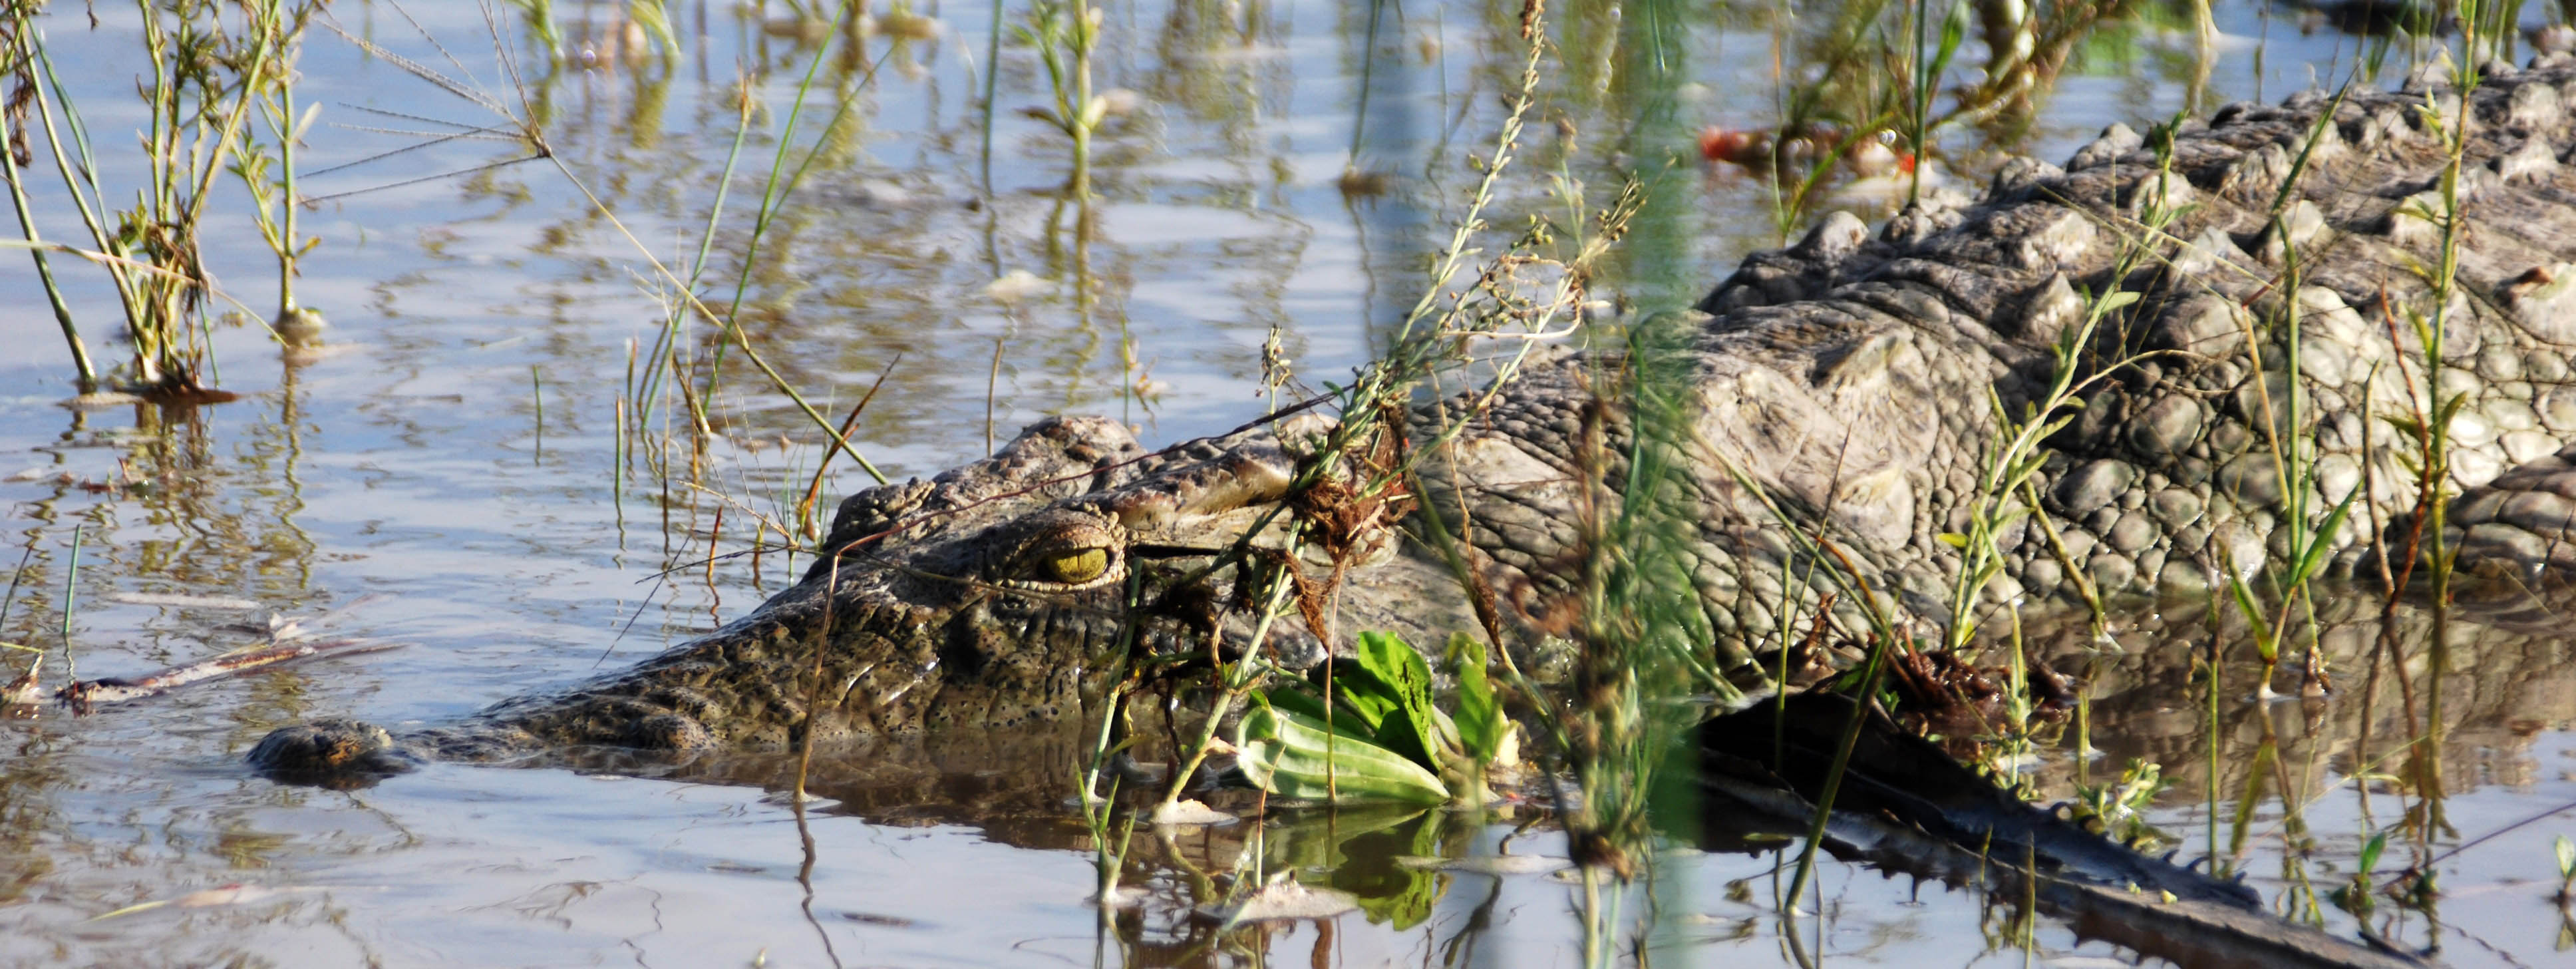 Nile crocodile in Rufiji River, Selous